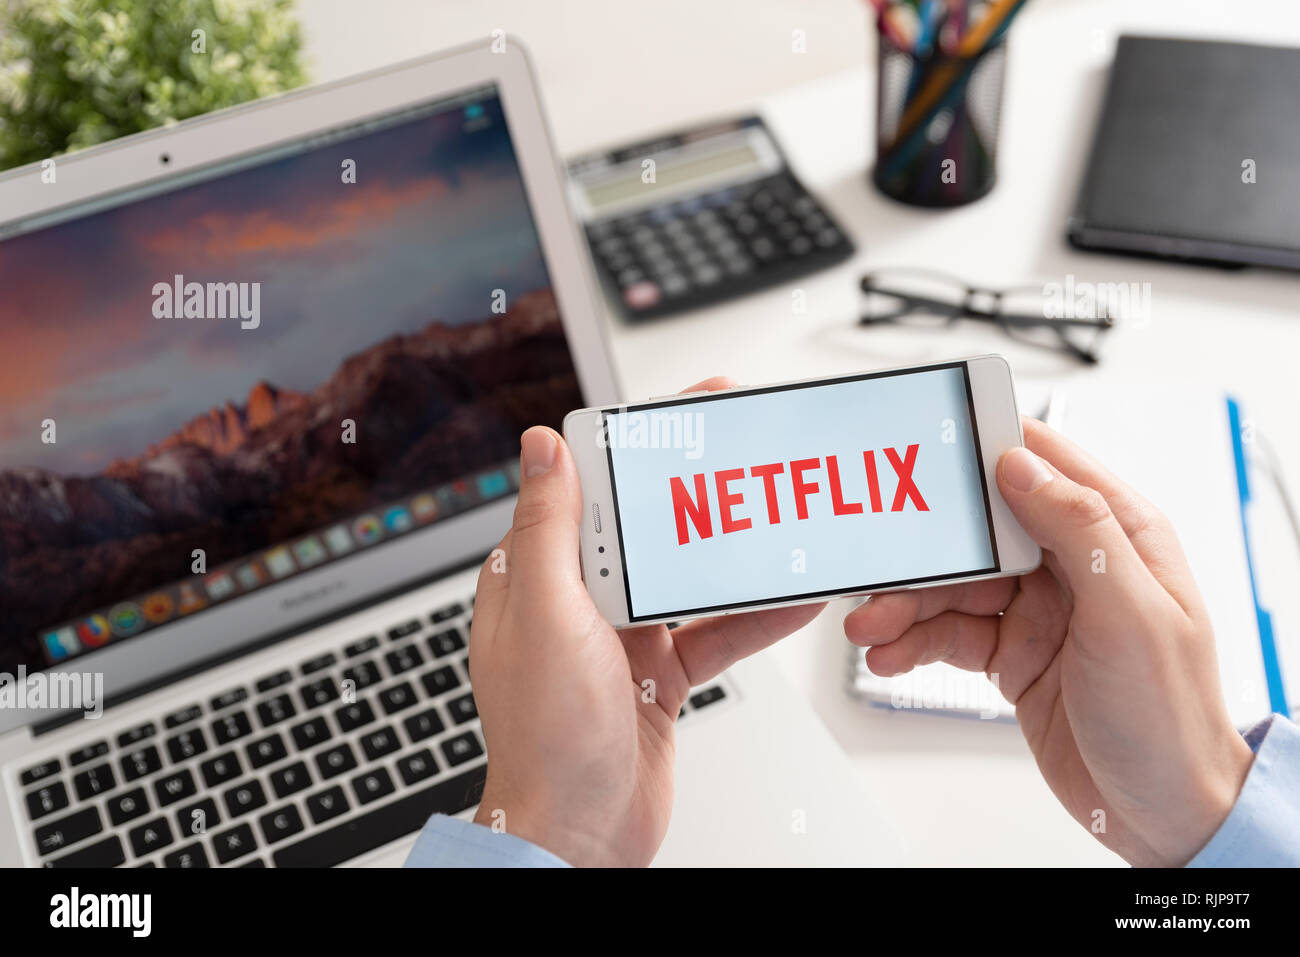 Wroclaw, Poland - JAN 31, 2019: Man holding smartphone with Netflix logo. Netflix is a global provider of streaming movies and TV series Stock Photo